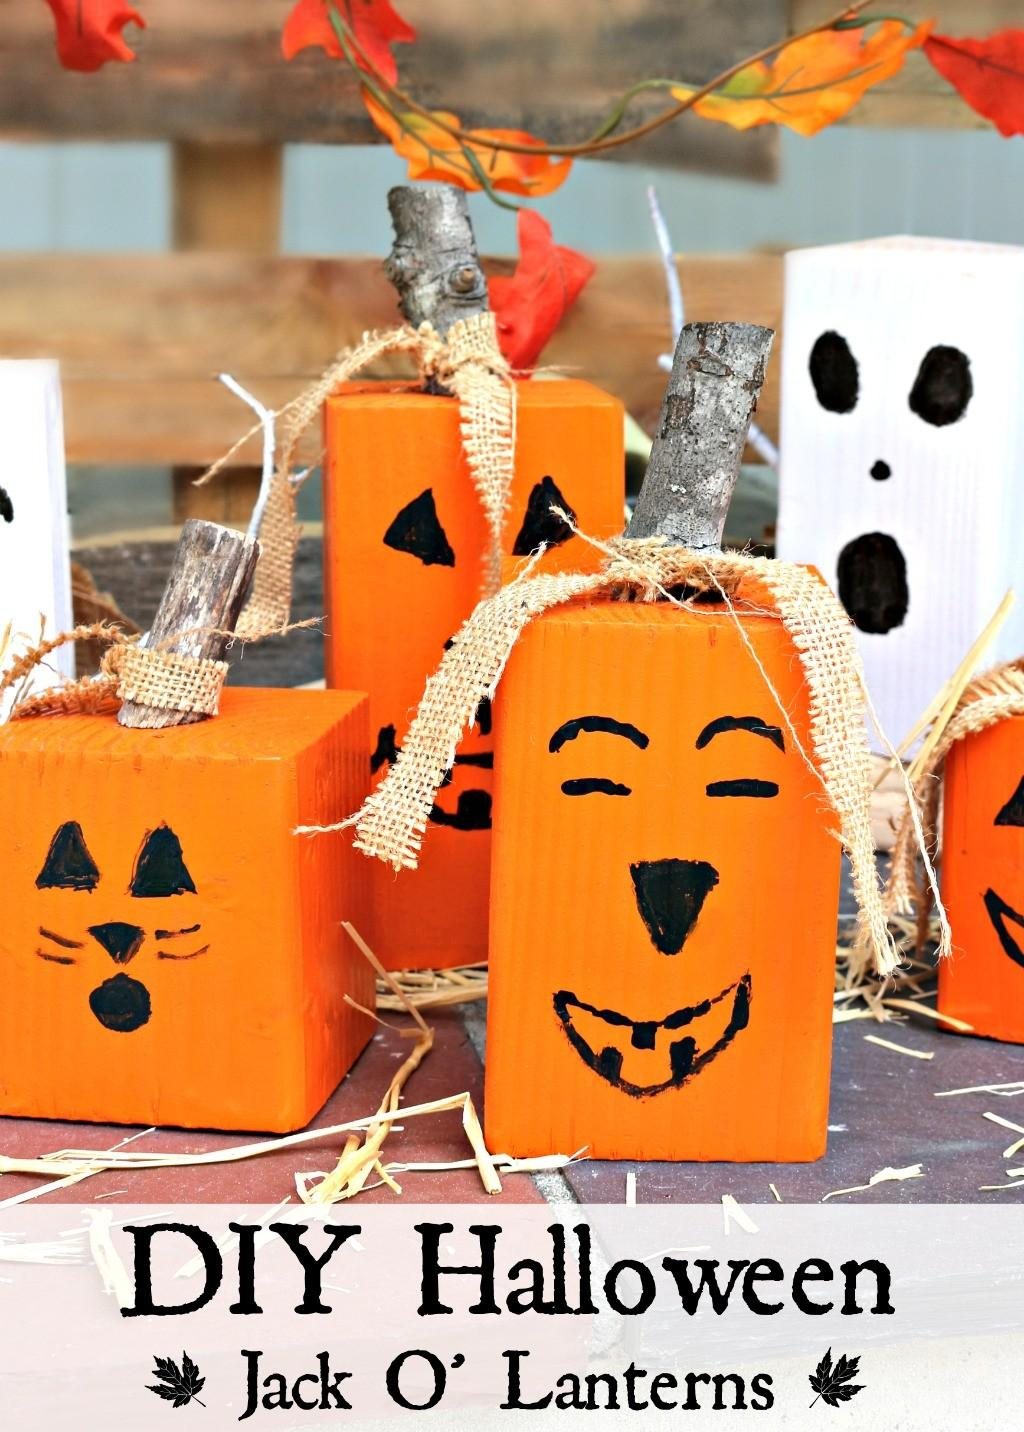 Make Easy Wood Pumpkin Jack Lantern